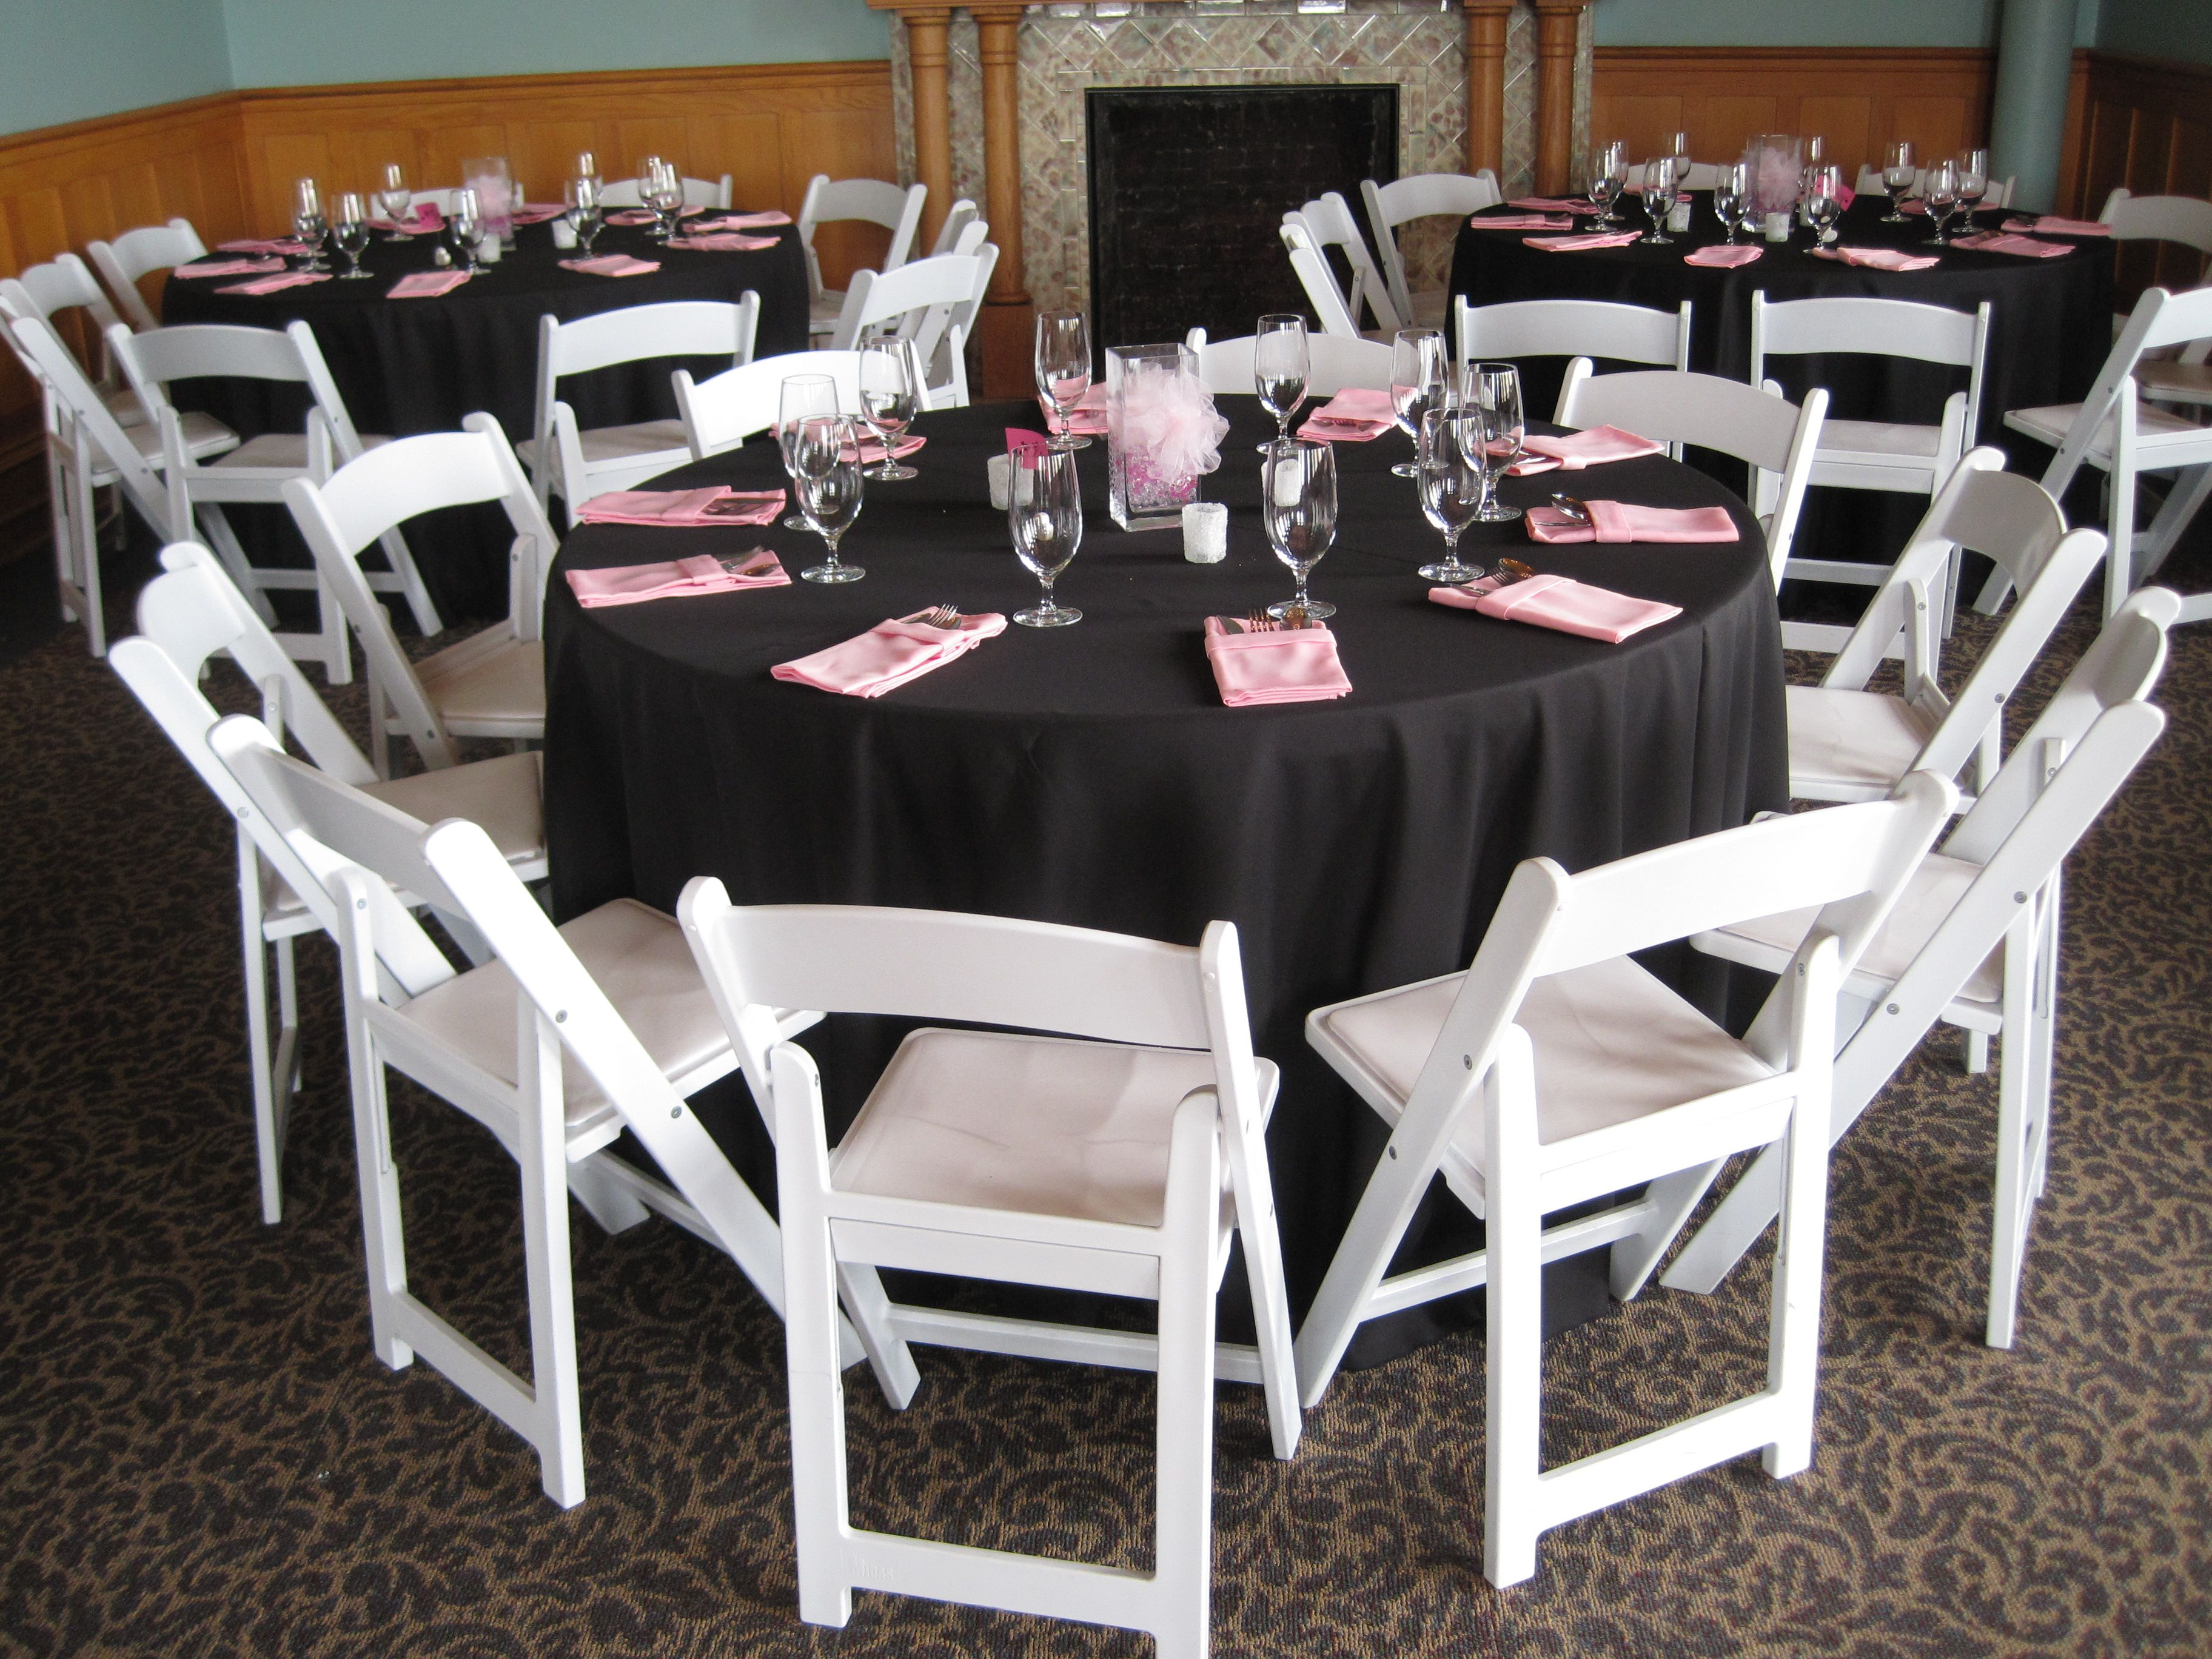 Astonishing Black Tablecloths And Pink Napkins For A Simple Wedding Caraccident5 Cool Chair Designs And Ideas Caraccident5Info